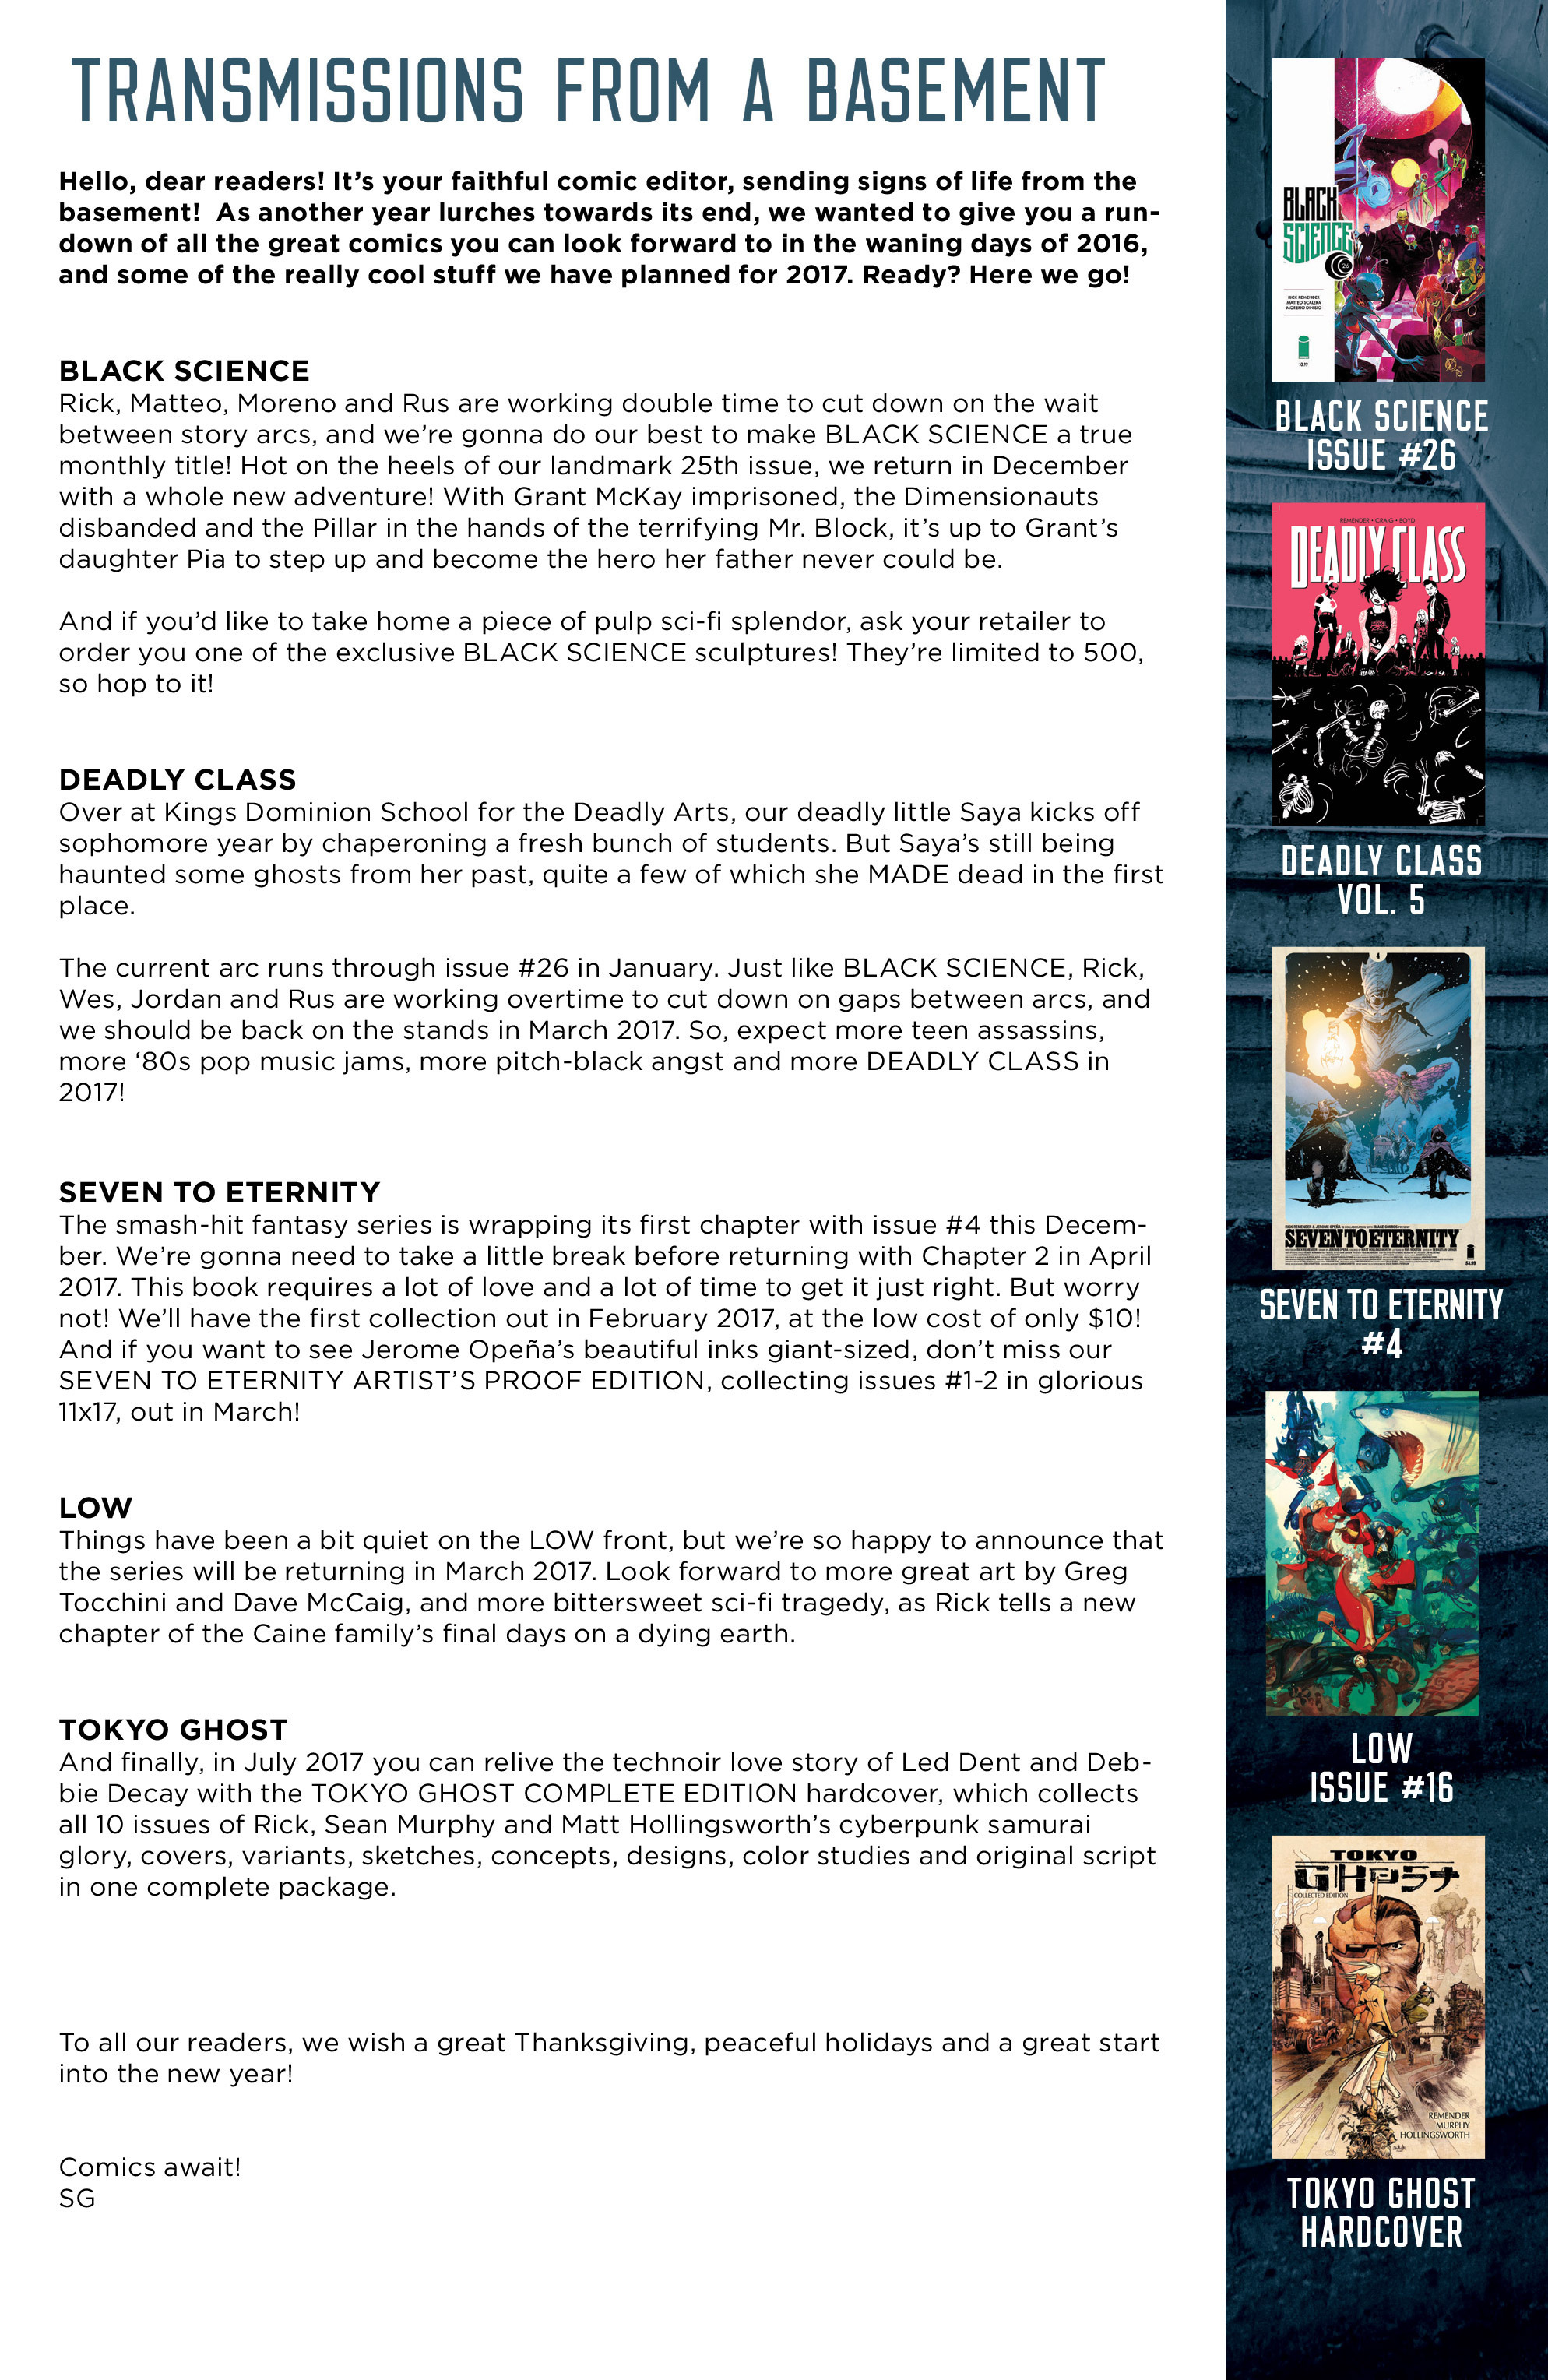 Read online Deadly Class comic -  Issue #25 - 23